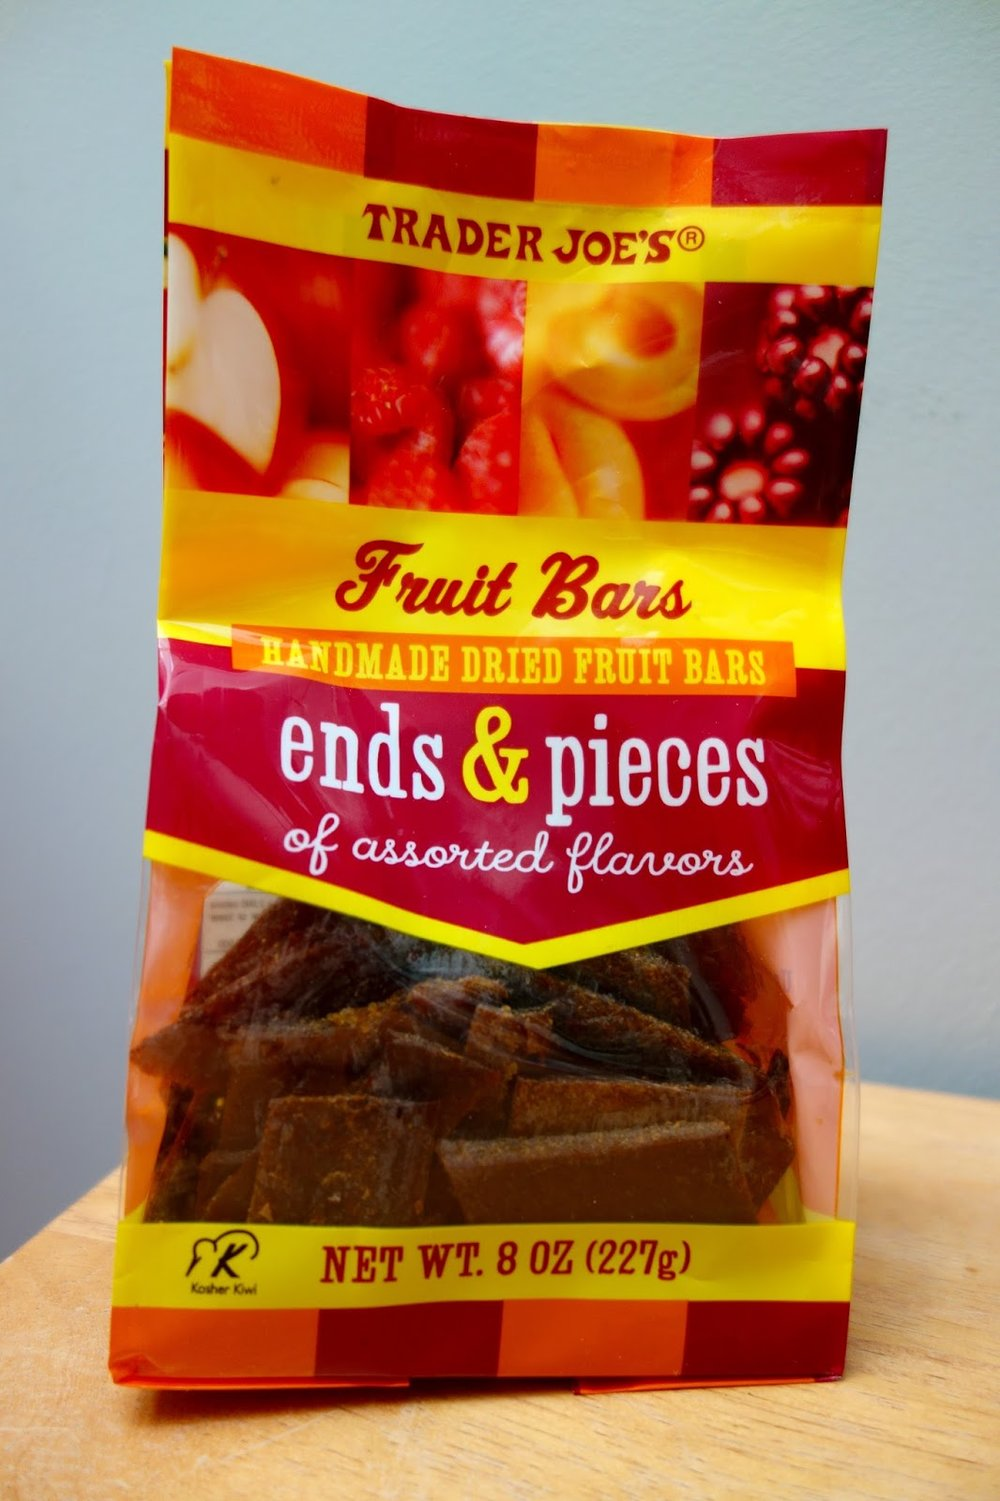 Trader Joe's ends & pieces - I realize there are bigger fish to fry, but can I just take a moment to give Trader Joe's ends & pieces a shoutout. It's essentially a bag of leftovers corners from the fruit bars they make, but let me tell you these are so amazing and delicious and the perfect